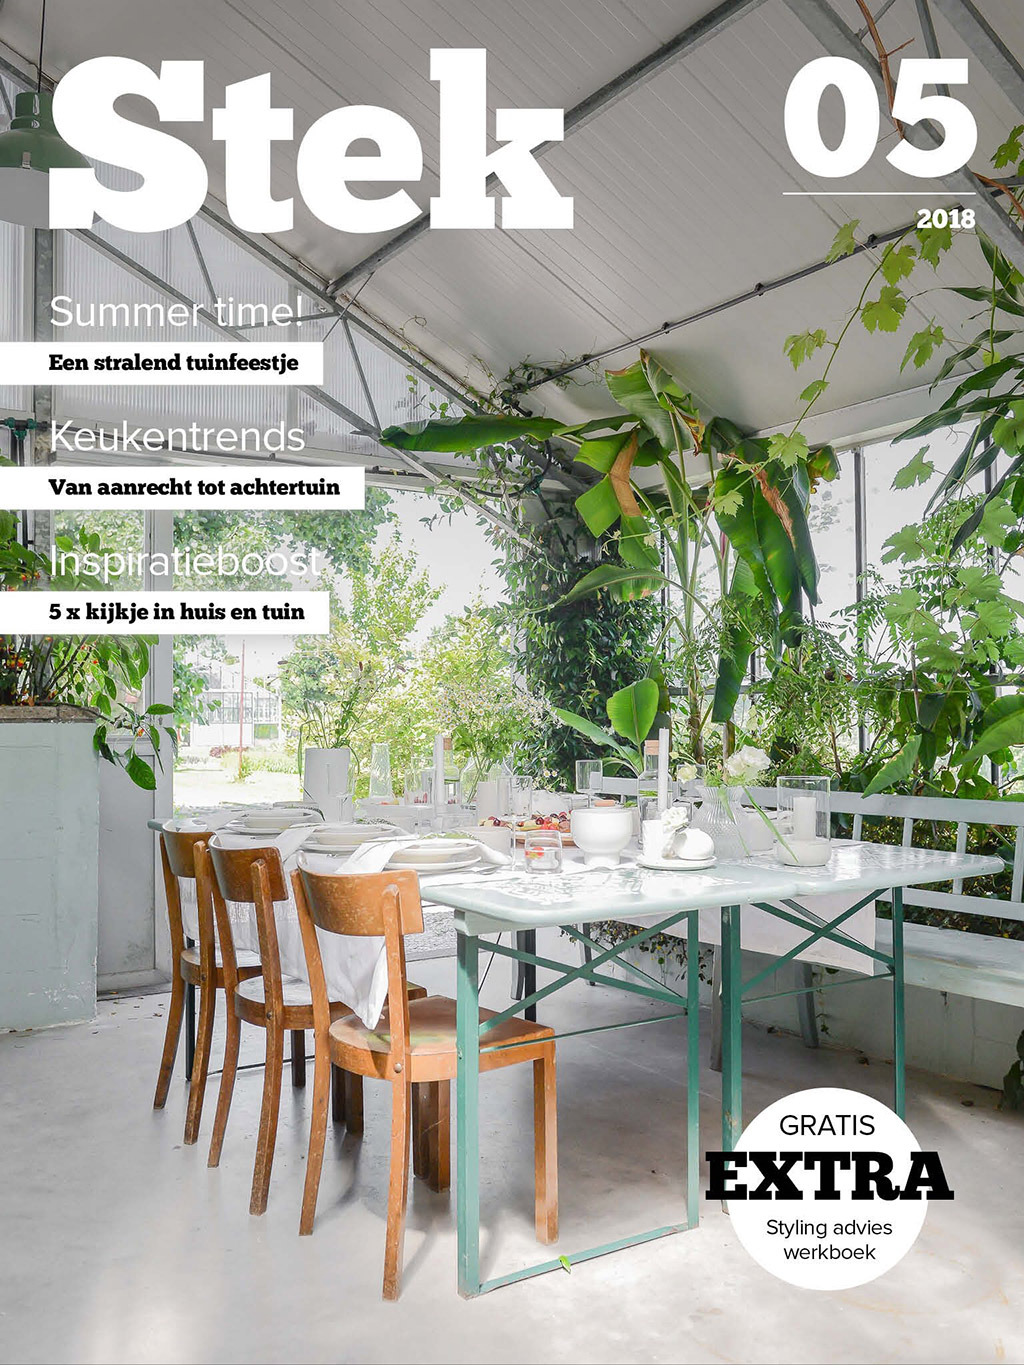 Keukentrends | Tafel Styling | Stek Magazine cover